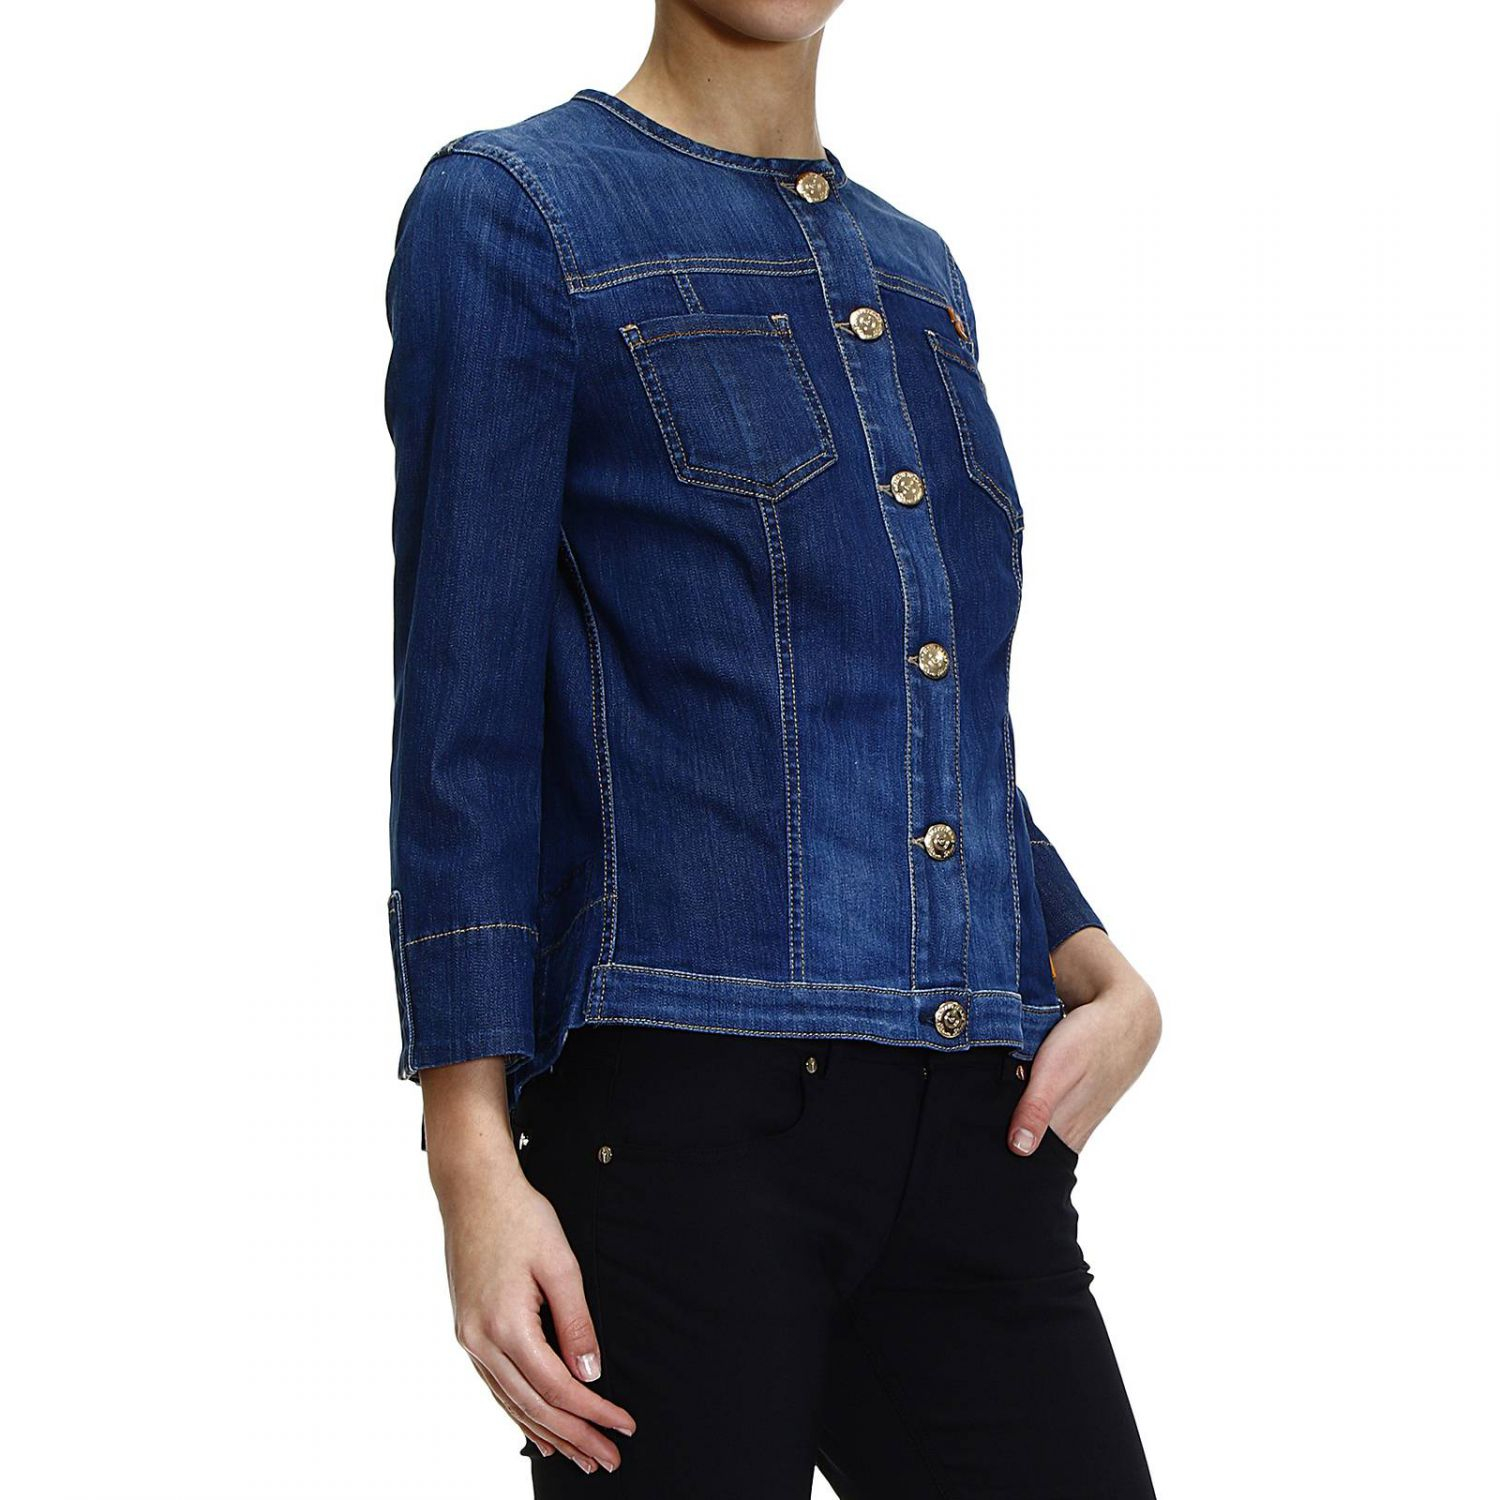 Giorgio Armani Jacket Denim Without Collar In Blue Lyst